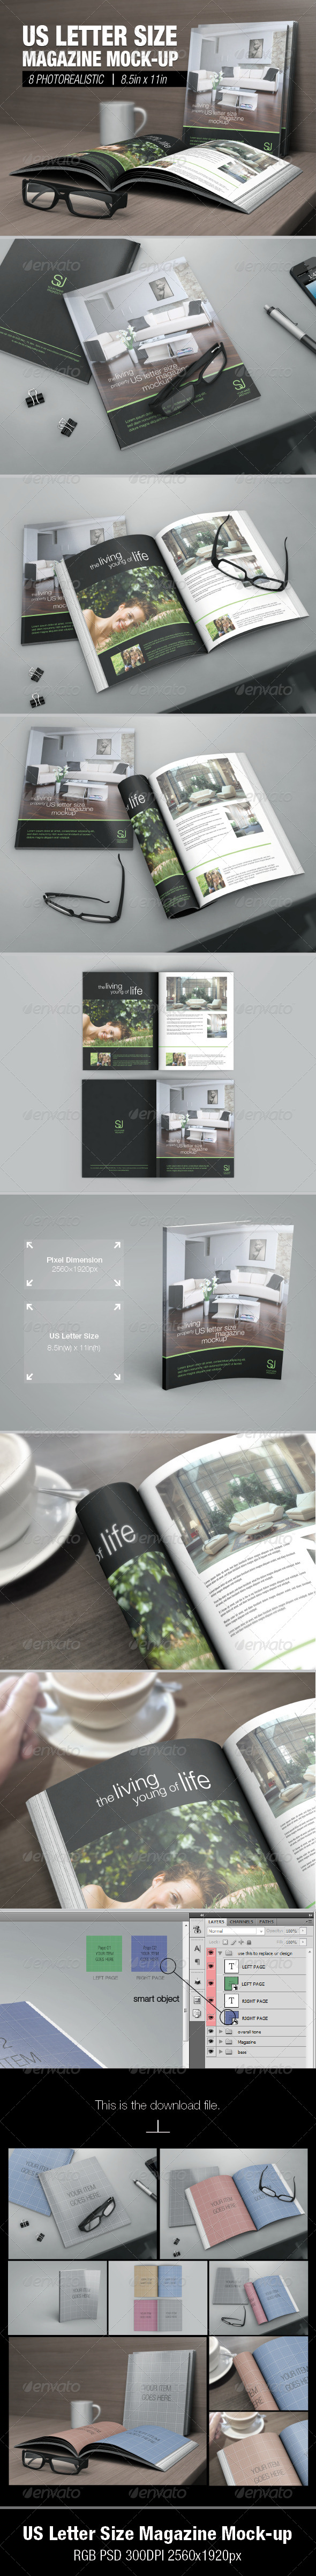 GraphicRiver US Letter Size Magazine Mock-up 5813649